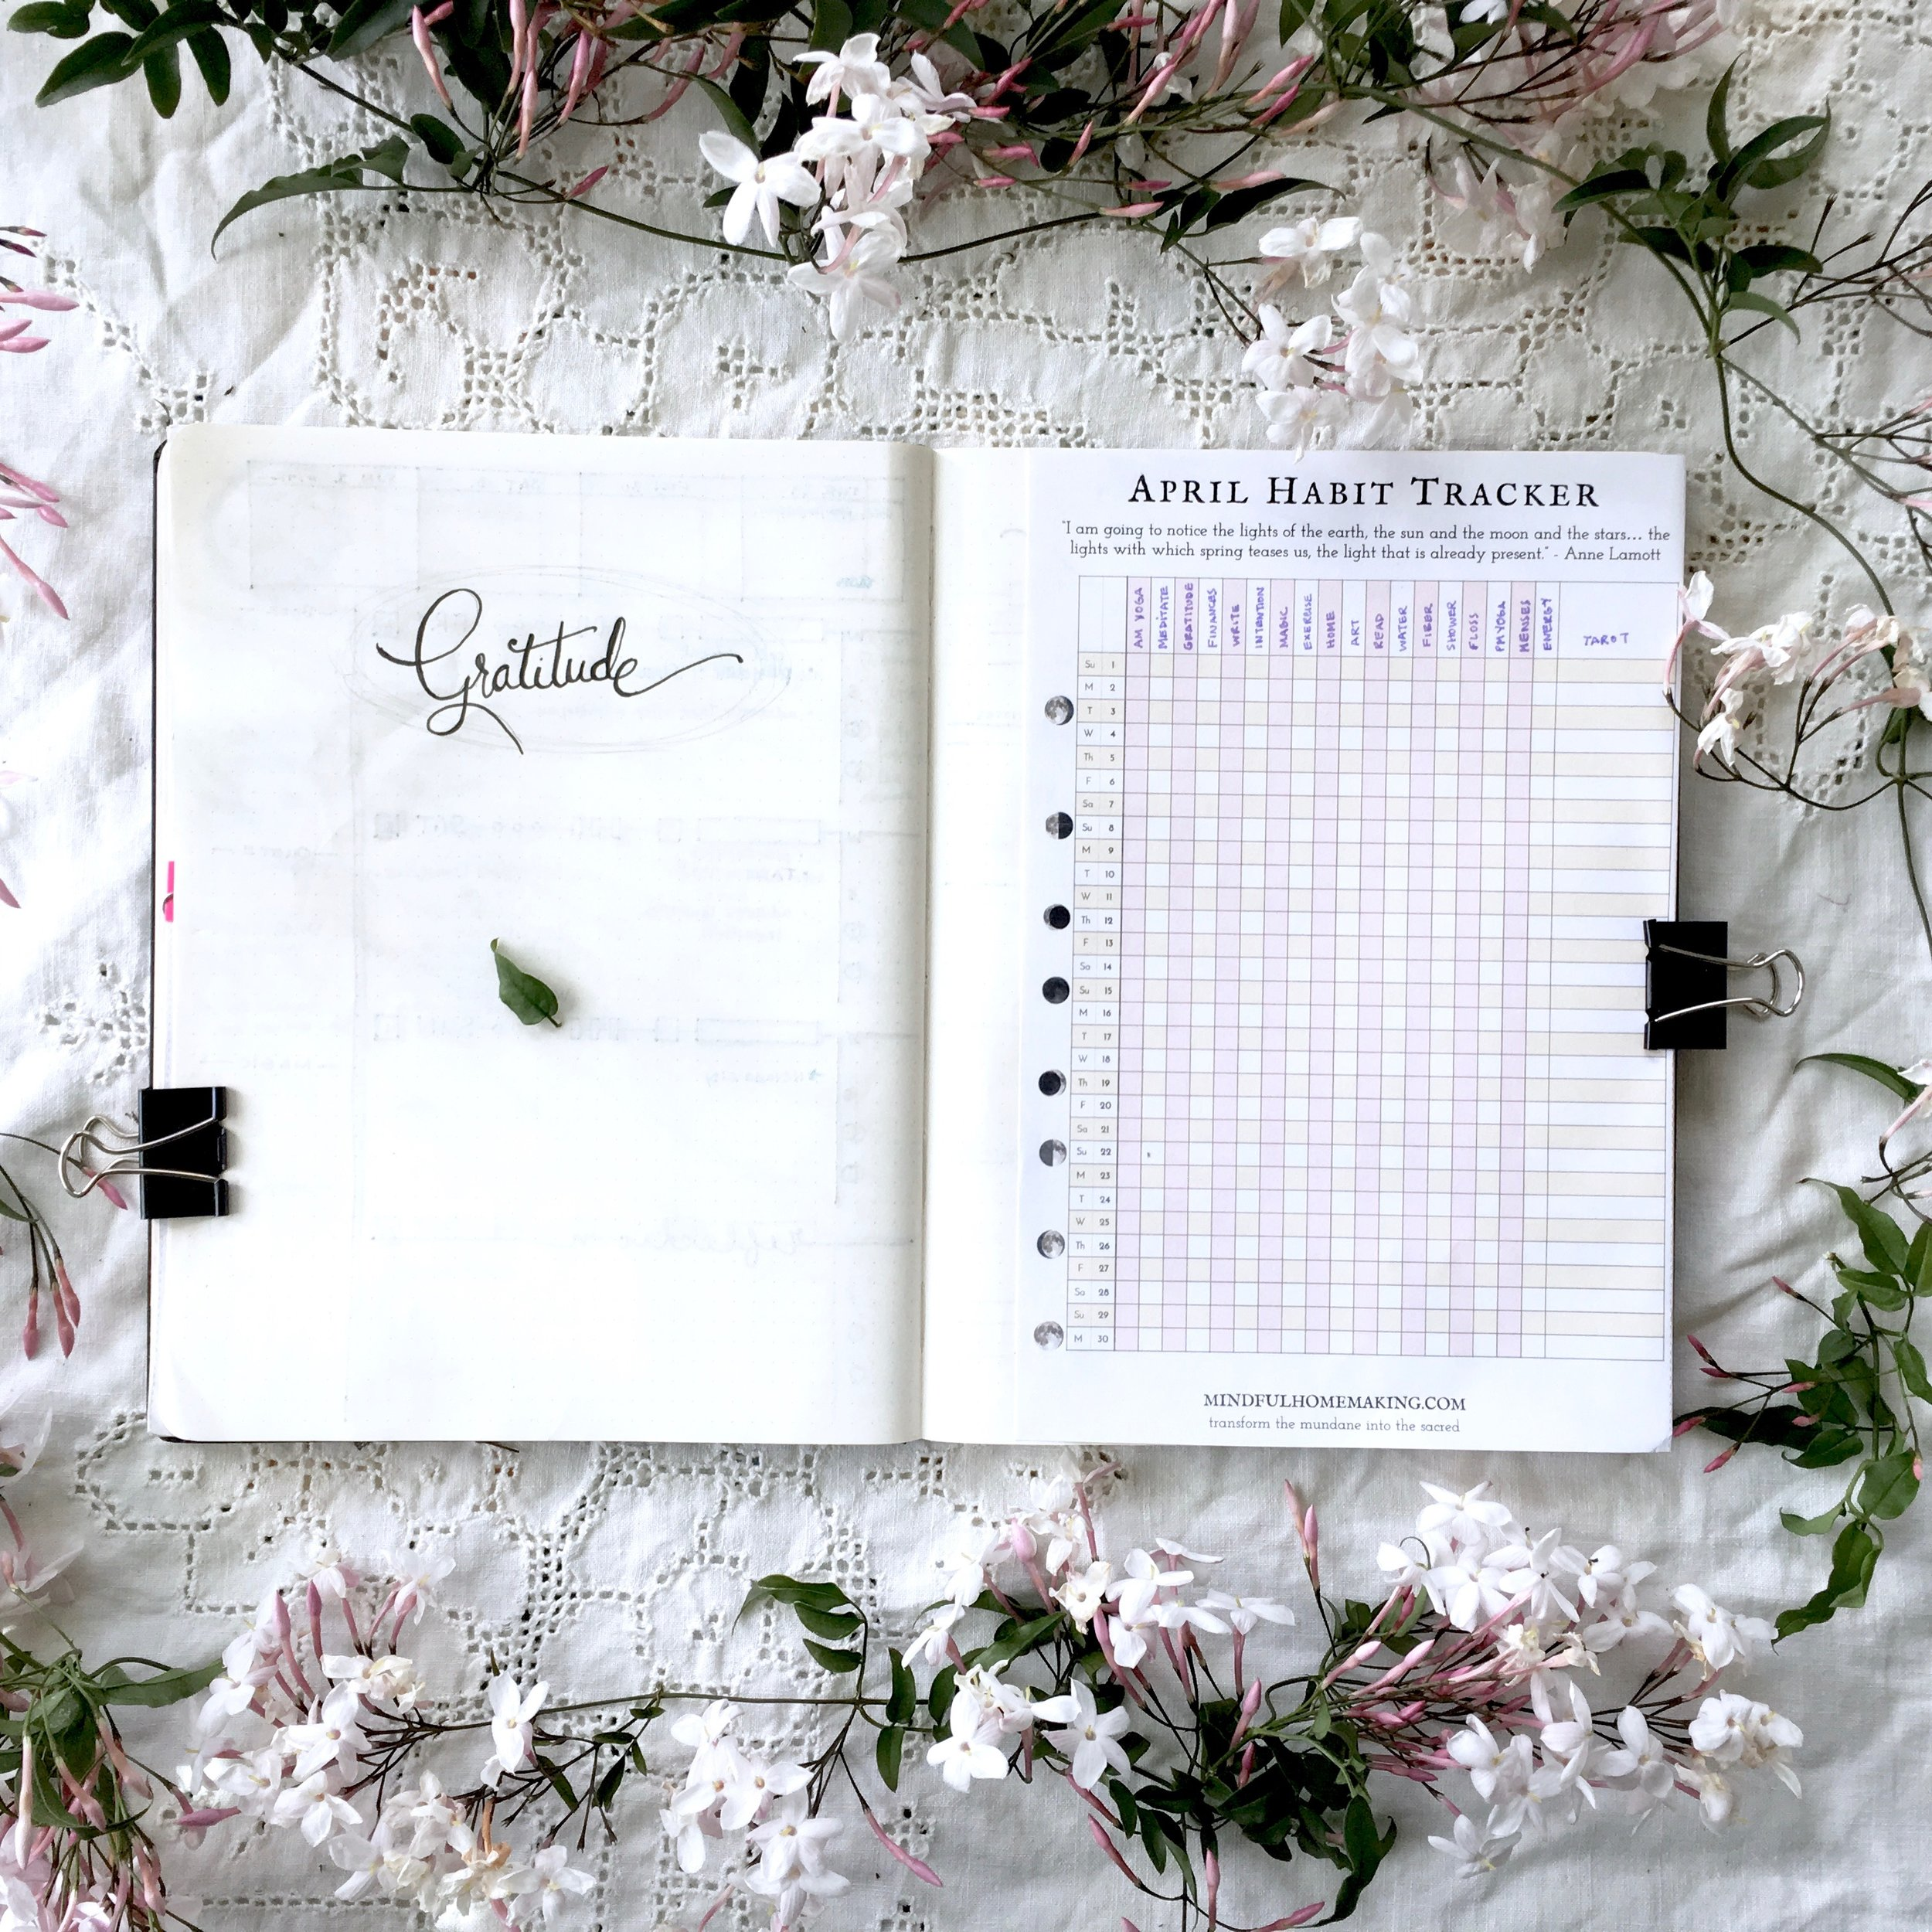 April Habit Tracker and Gratitude Journal